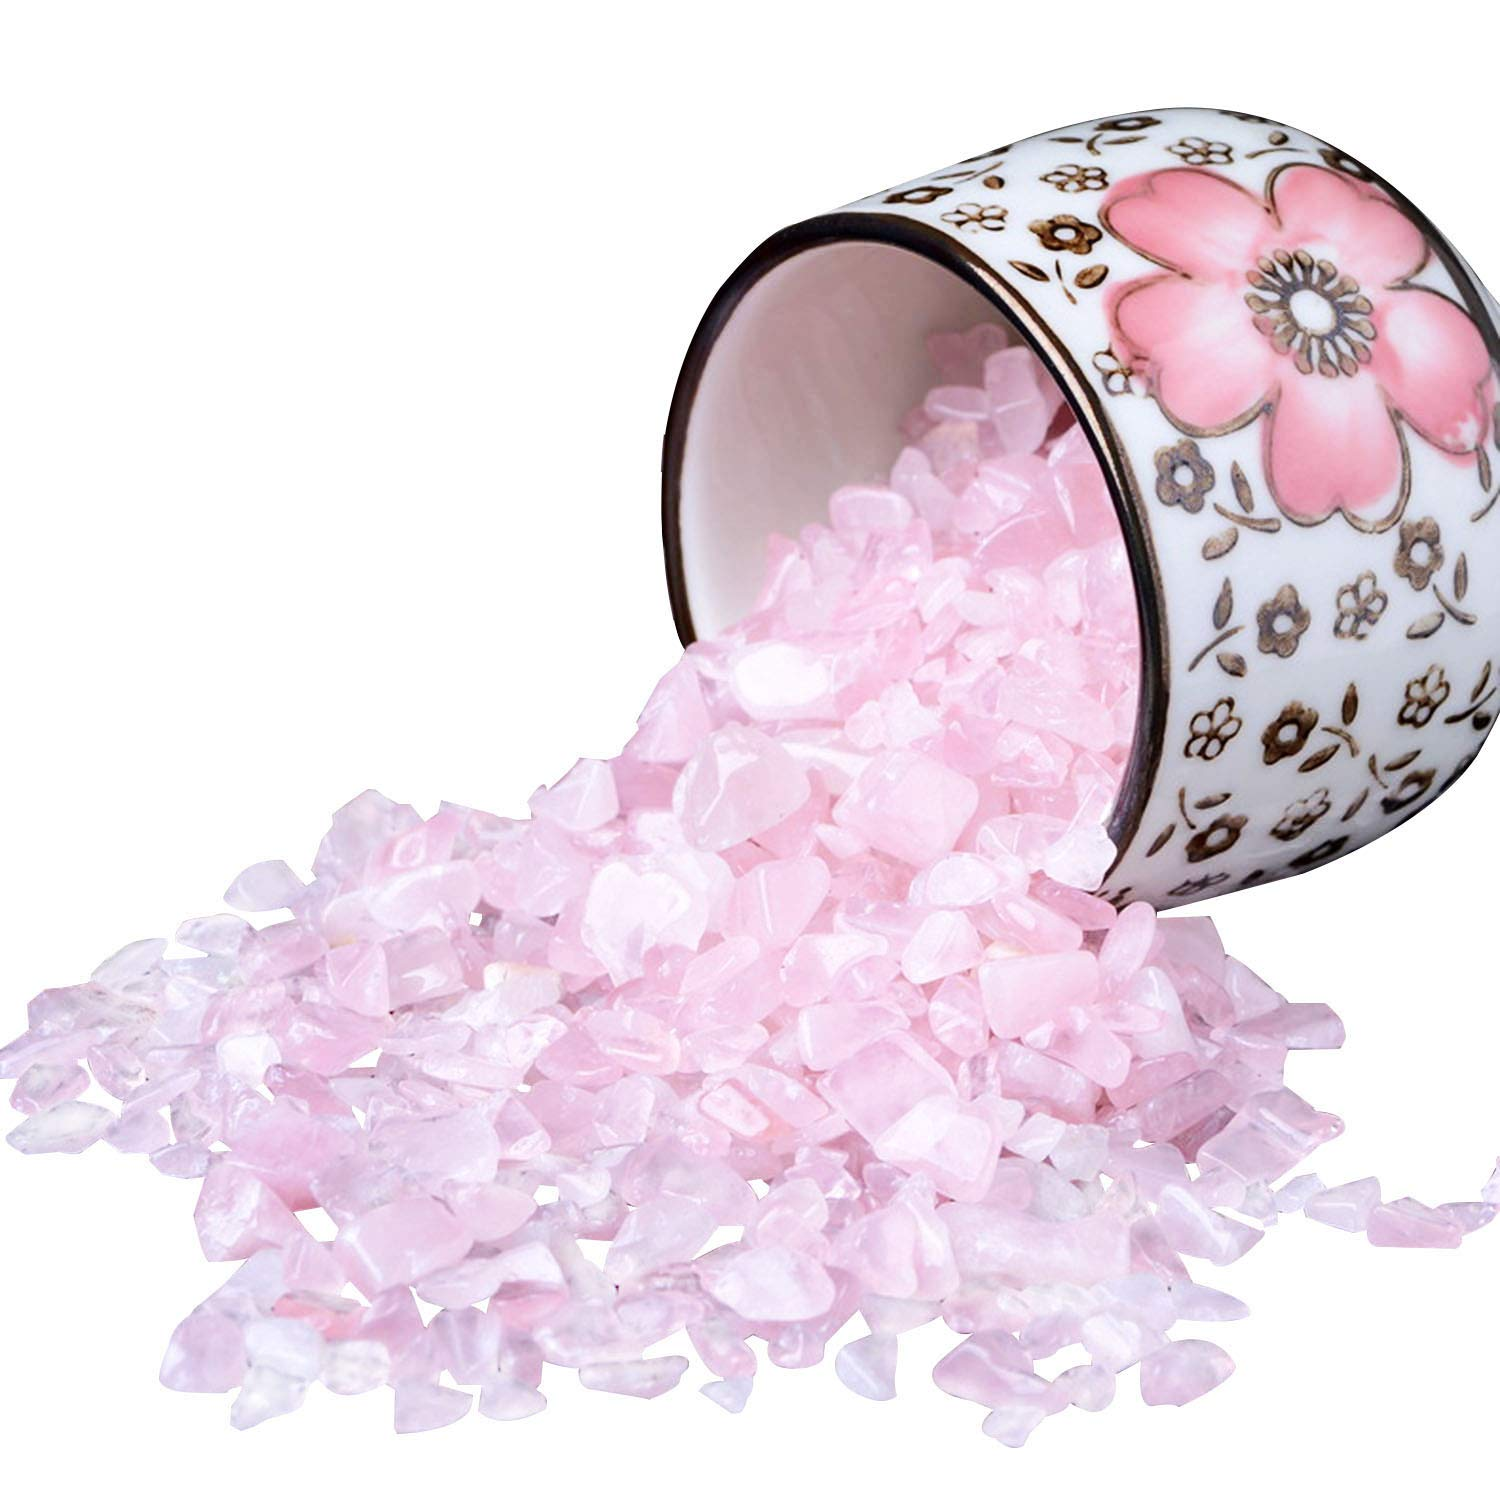 Rose Stones, Crystals Gravel Quartz Tumbled Stone Pink Pebble Irregular Shaped Stones for Vase Filler, 1 Pounds(approx 800) by Johouse